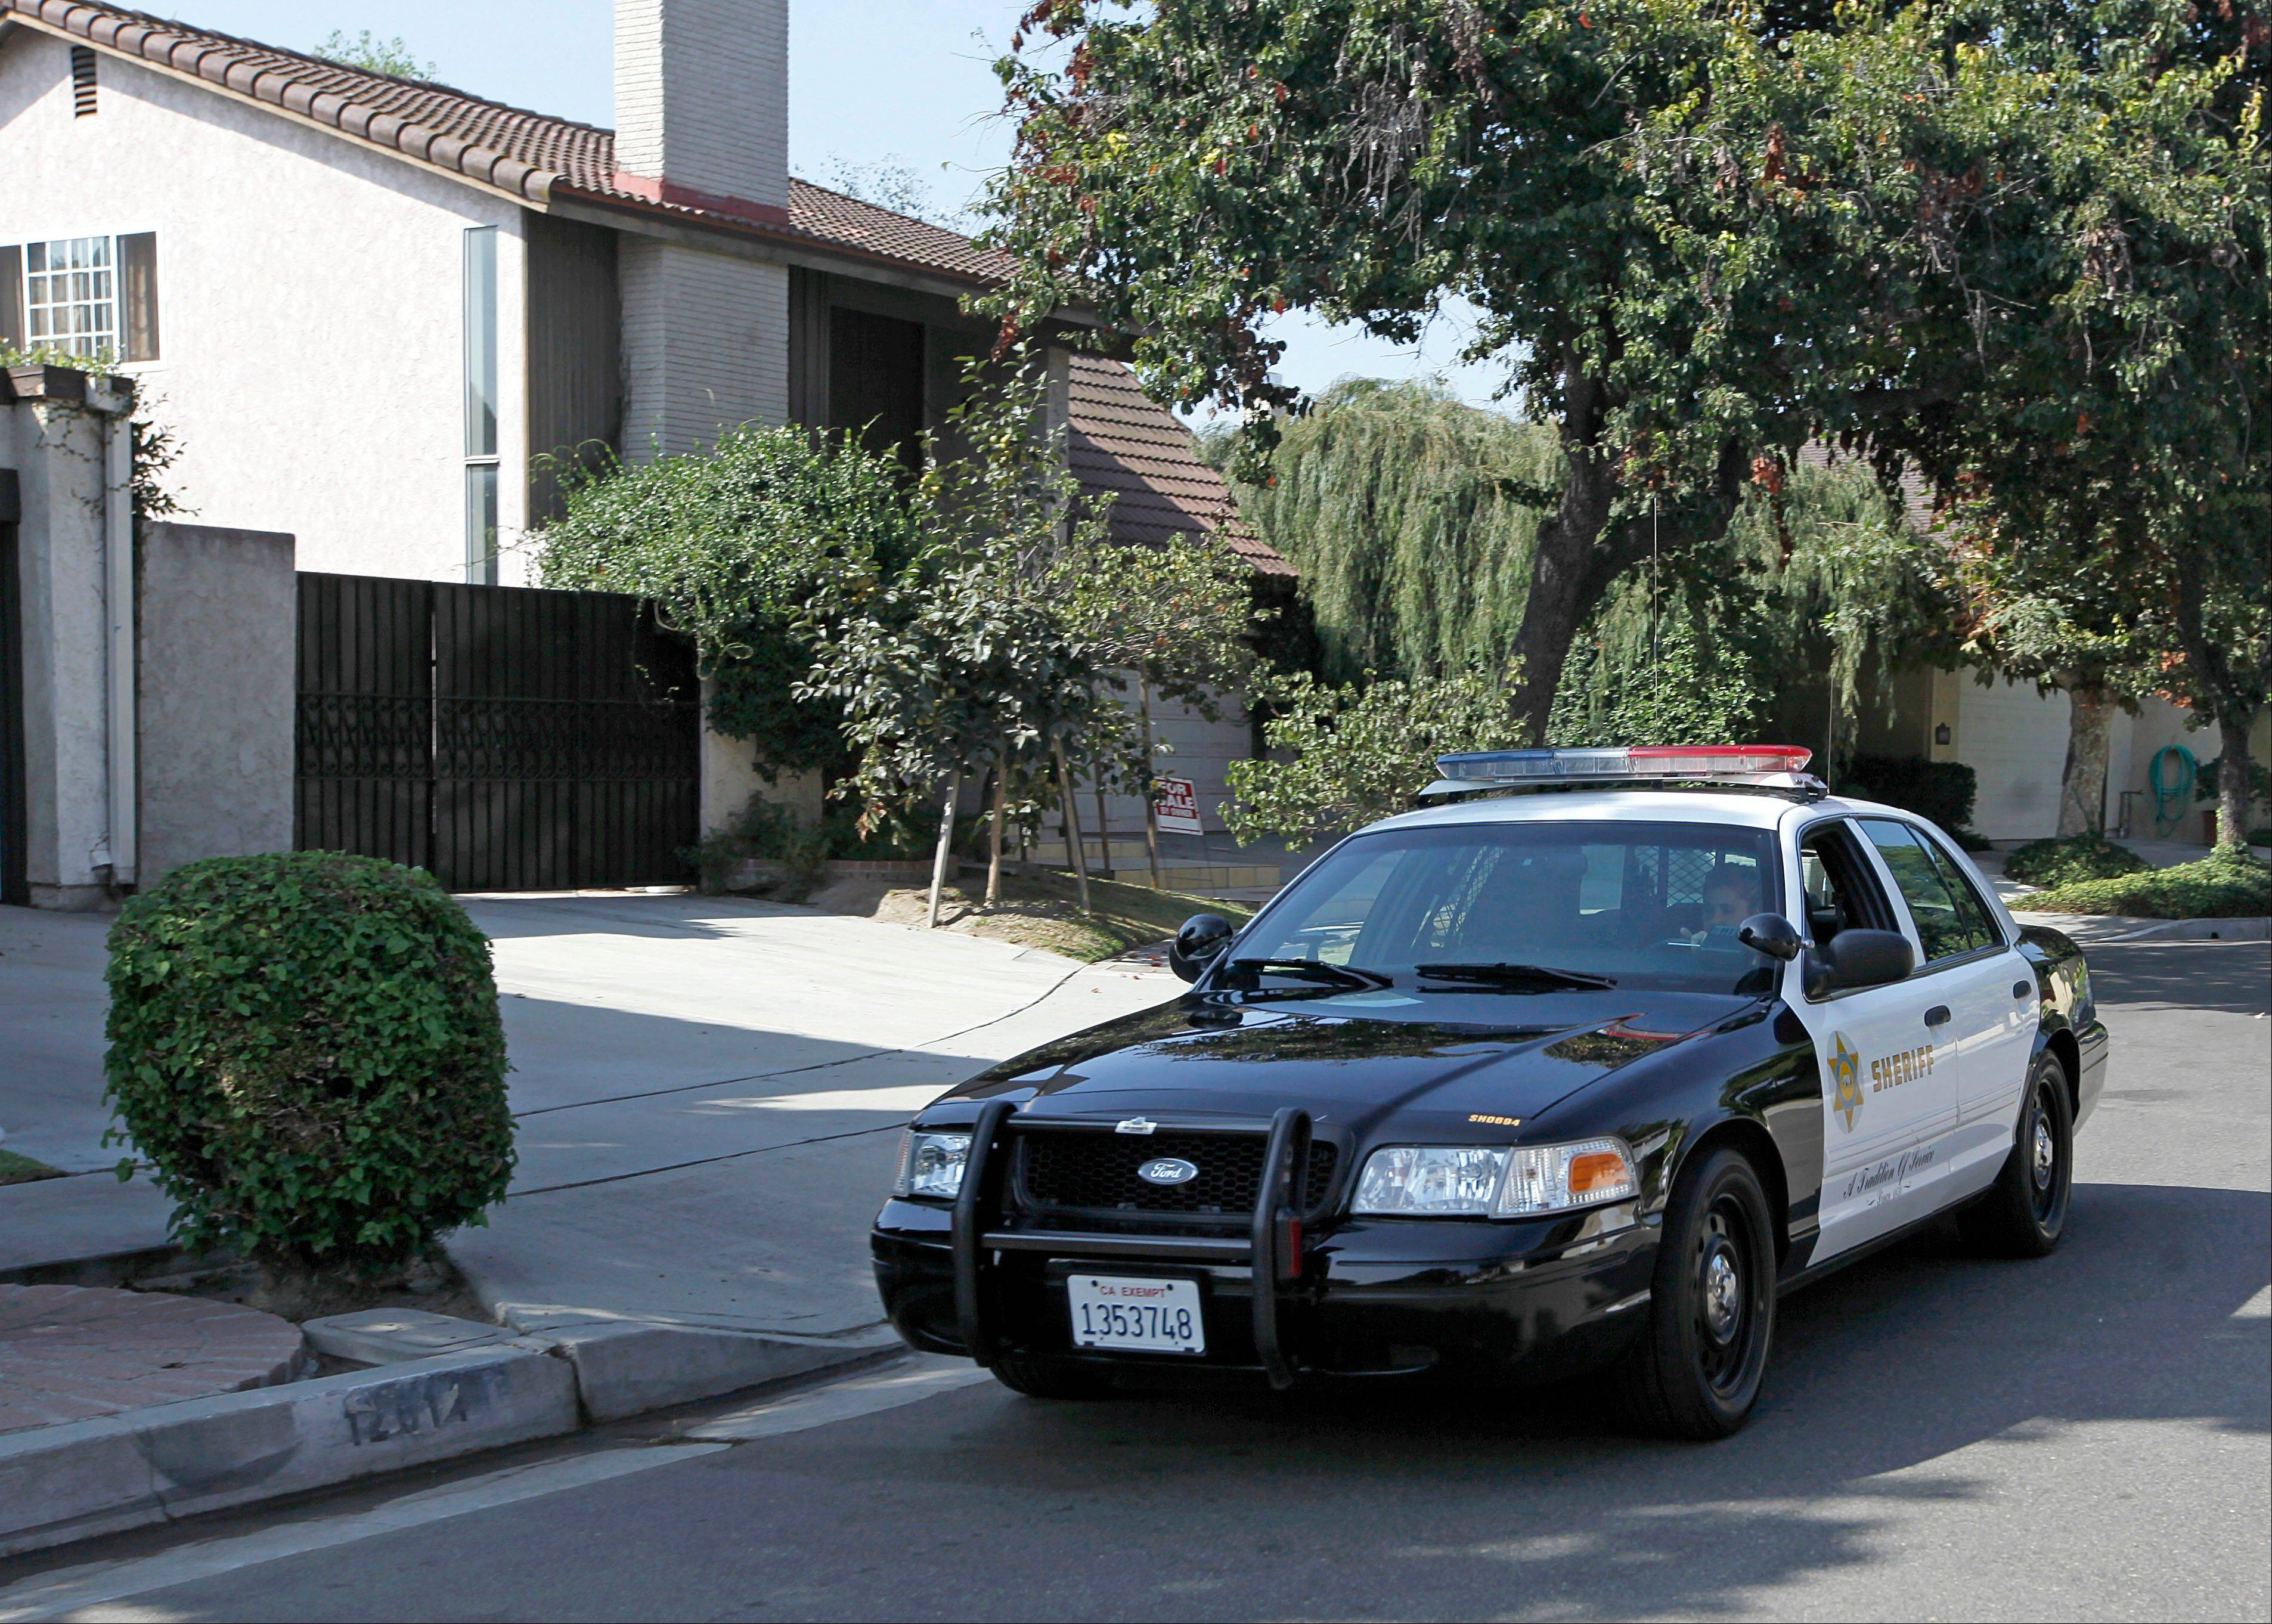 "A Los Angeles County Serriff's deputy in a patrol car passes the home of Nakoula Basseley Nakoula, the man who made the film ""Innocence of Muslims"" that has sparked violent protests, on a street in Cerritos, Calif., Tuesday, Sept. 25, 2012. The filmmaker has received death threats and was forced into hiding, putting his house up for sale, after the 14-minute movie trailer rose to prominence."